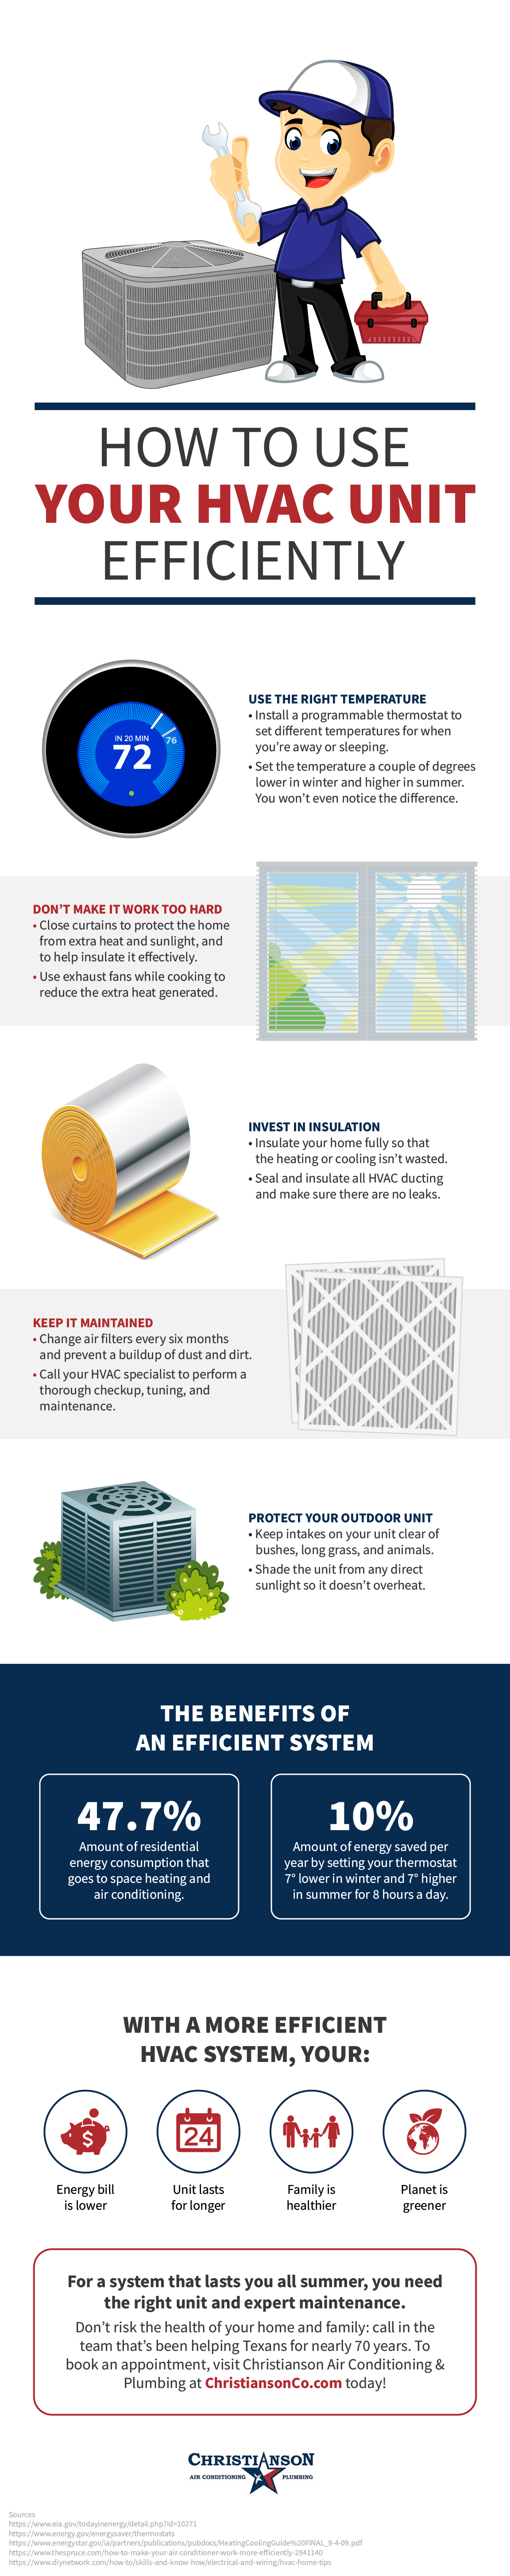 How to Use Your HVAC Unit Efficiently Infographic